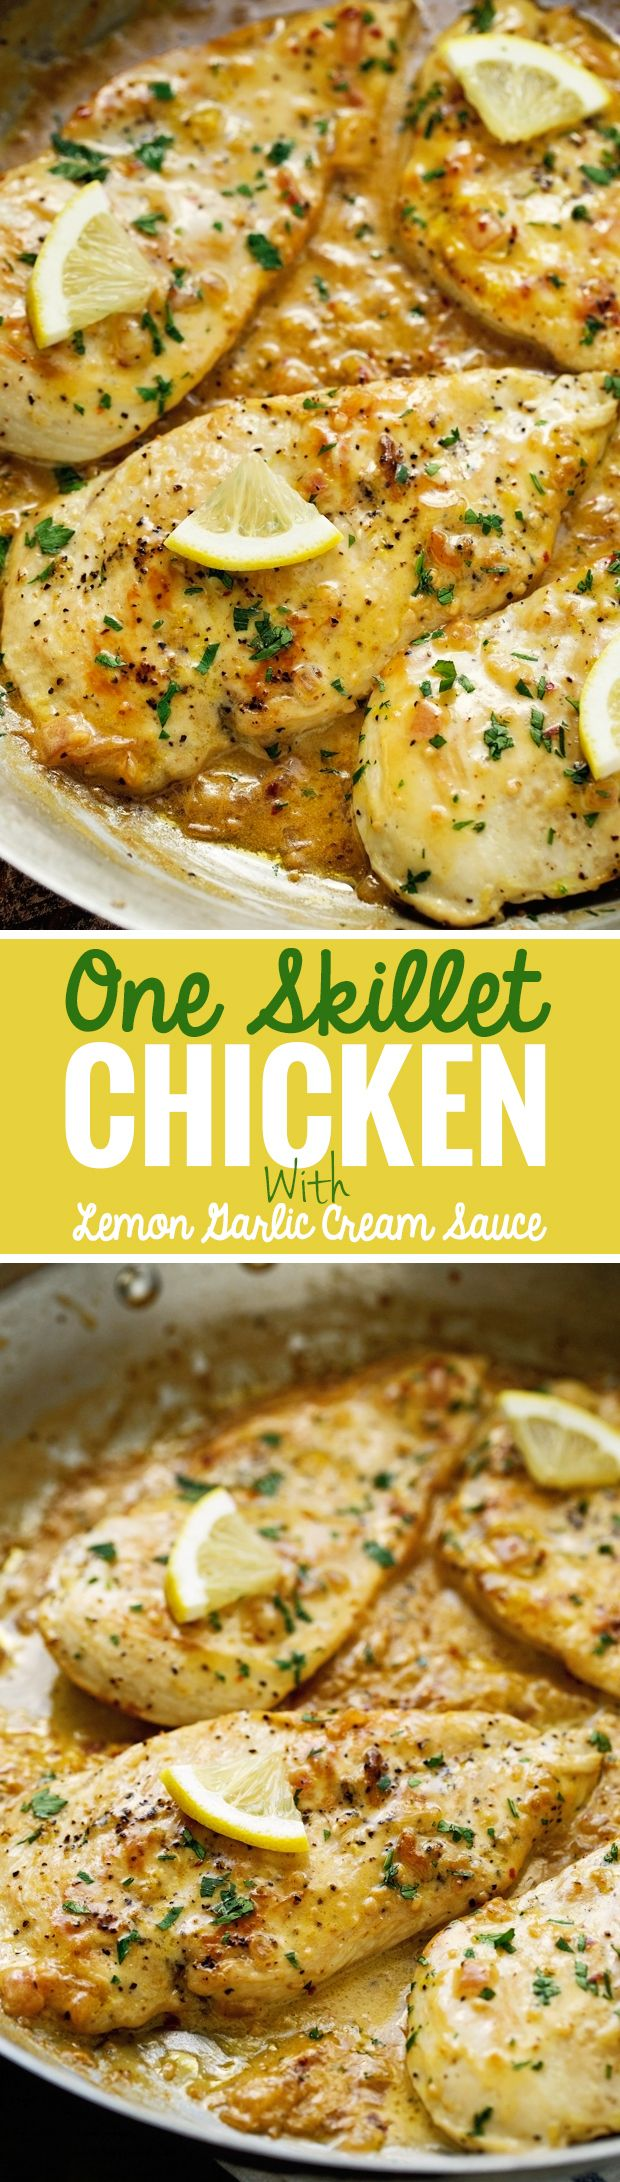 One Skillet Chicken With Lemon Garlic Cream Sauce | Epicure Recipe....this was SOOOO yummy!!! Did onion instead of shallot, and milk because my cream was bad. So good.